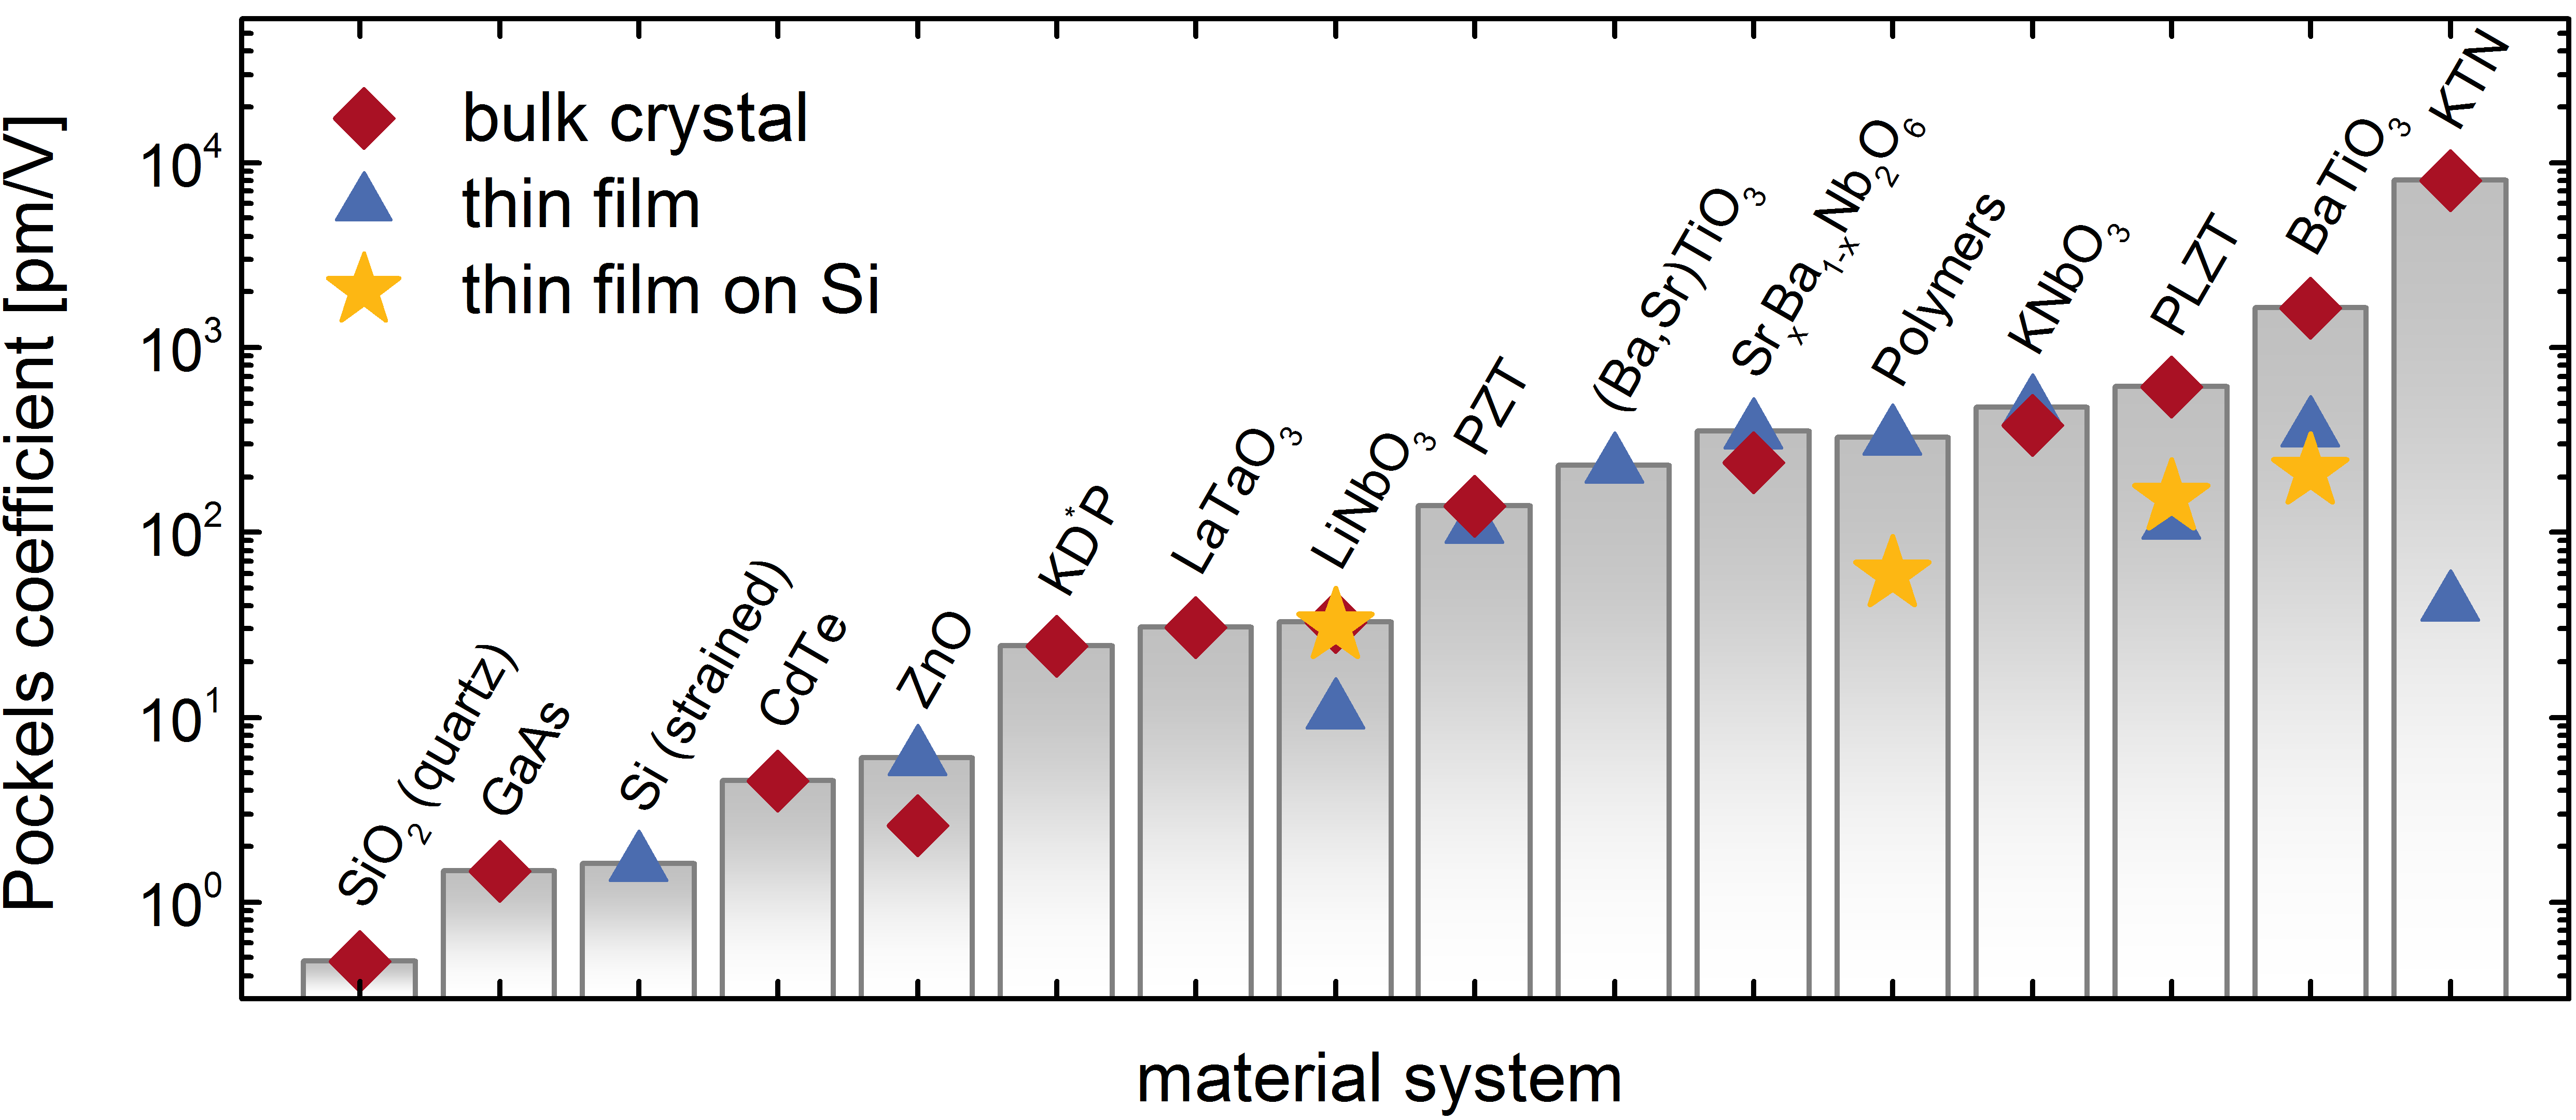 Pockels effect in bulk crystals and thin films for various material systems